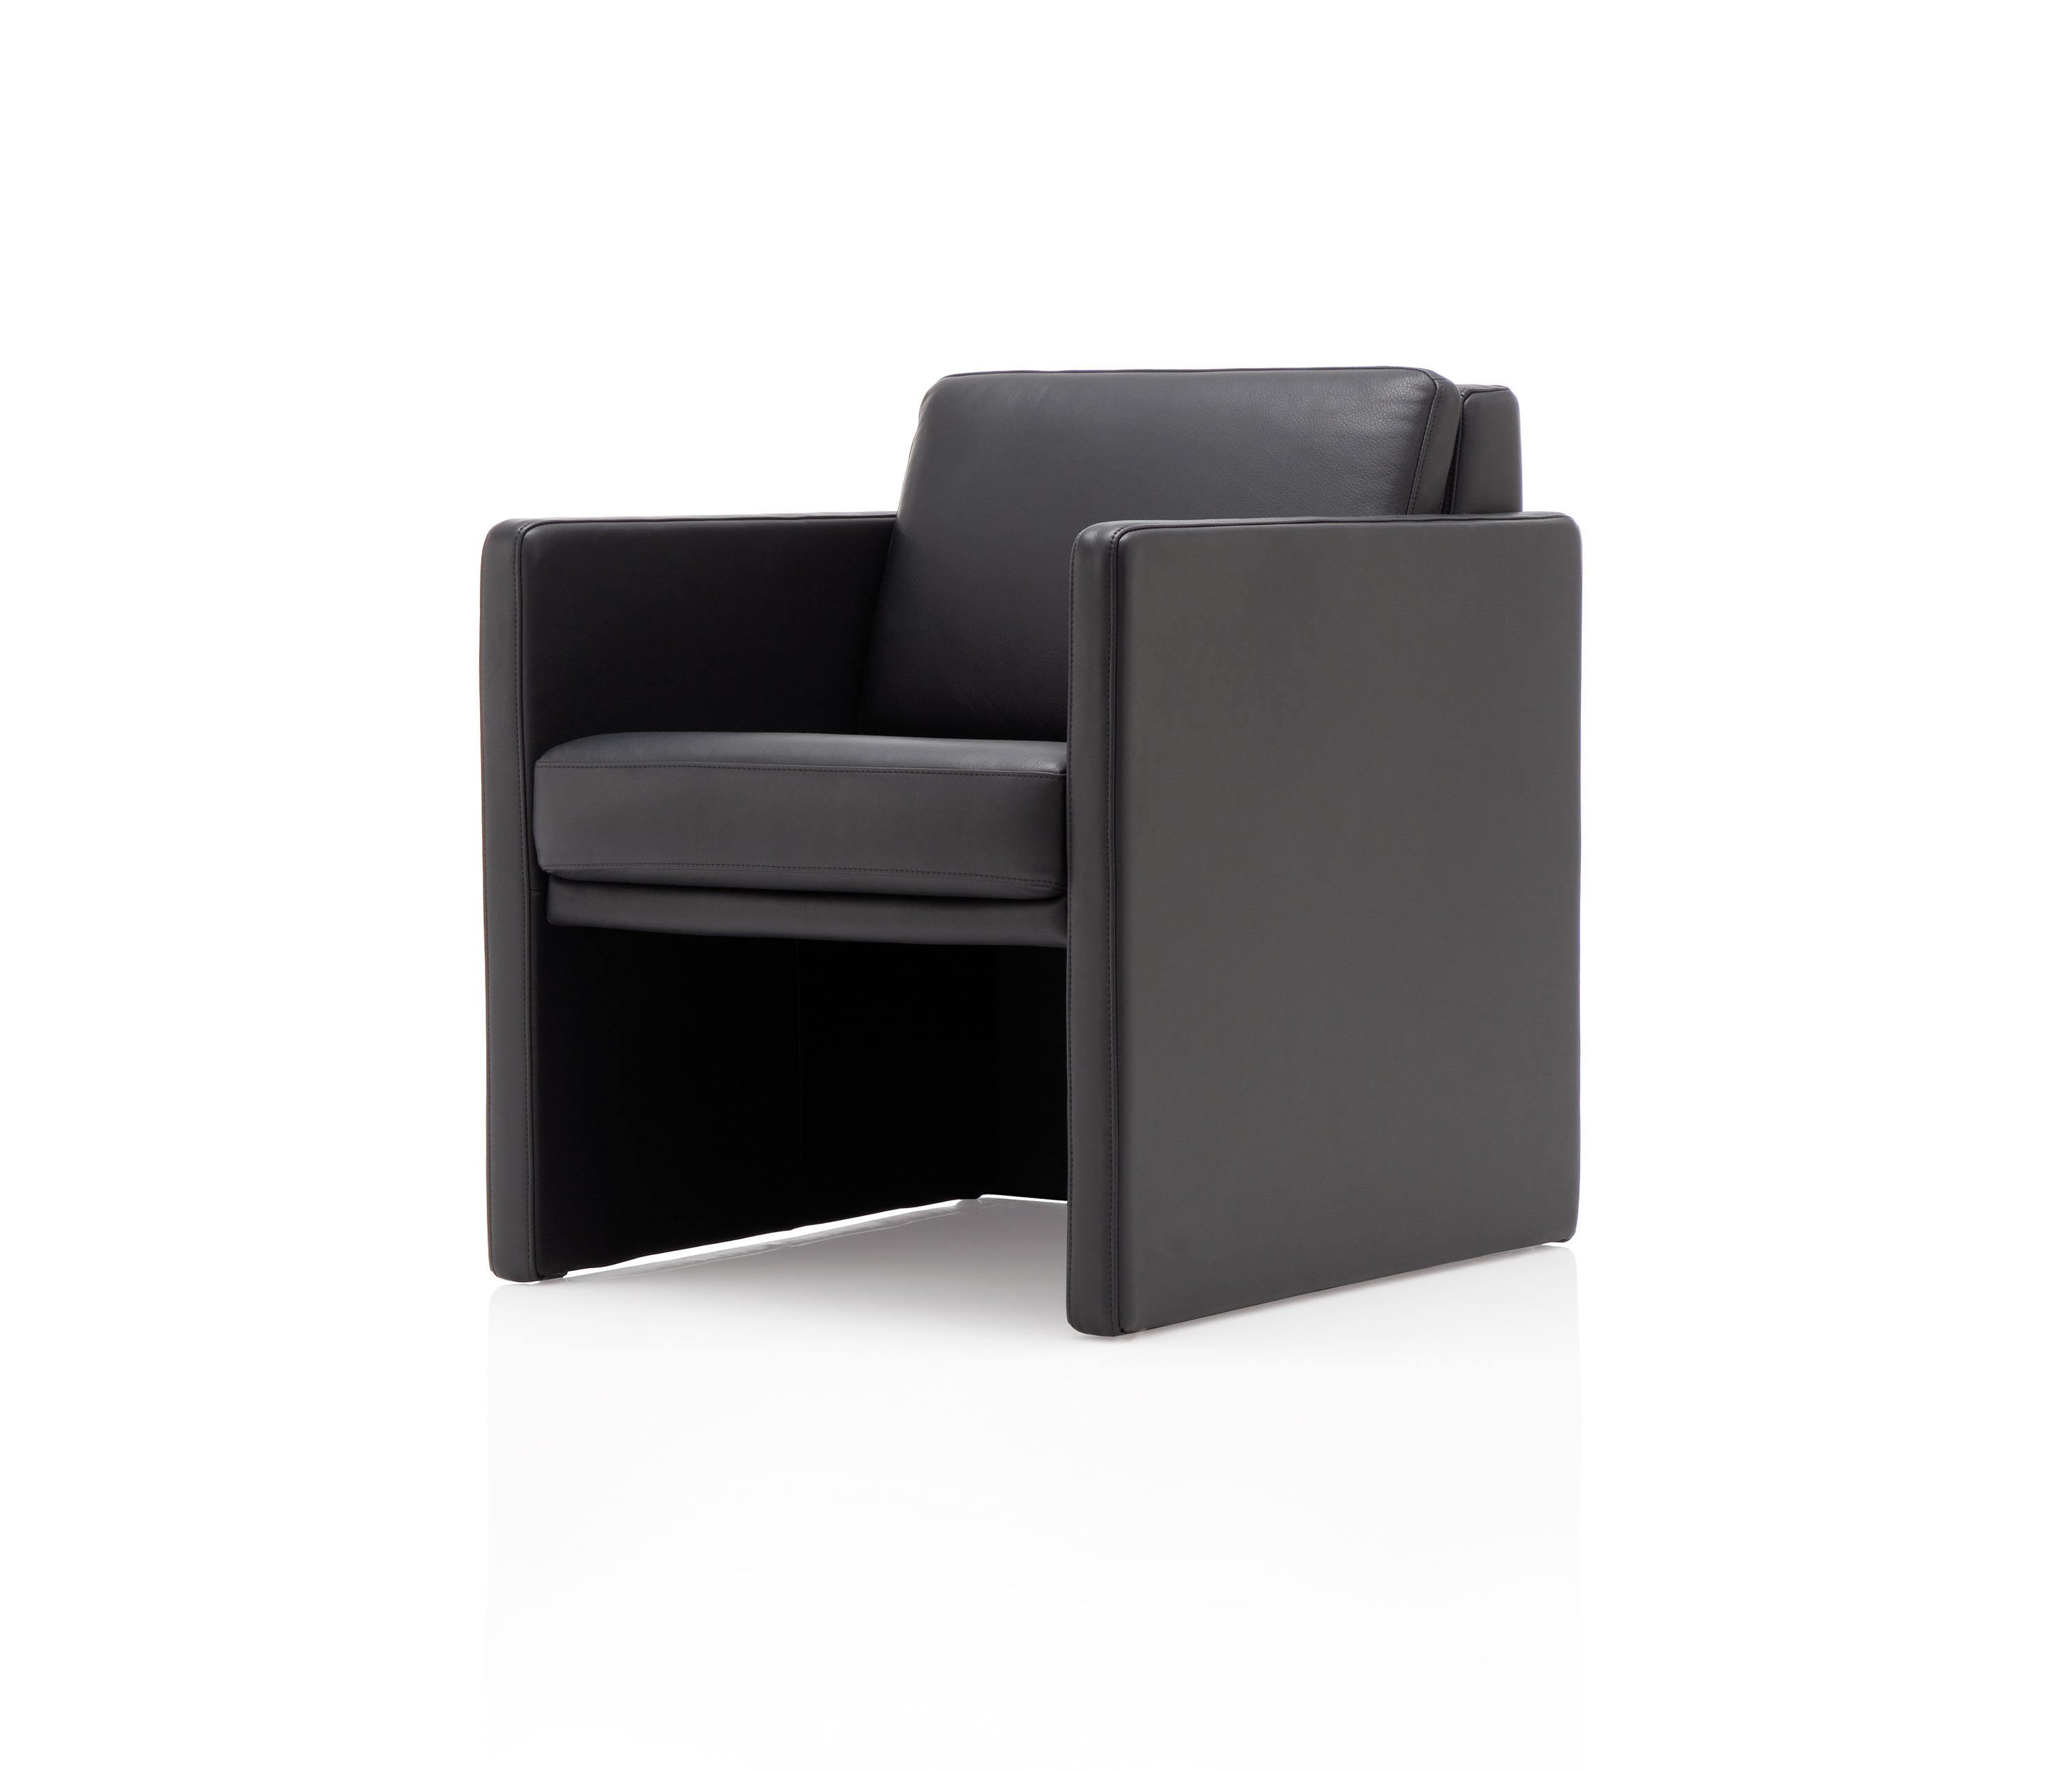 rolf benz ego loungesessel von rolf benz architonic. Black Bedroom Furniture Sets. Home Design Ideas